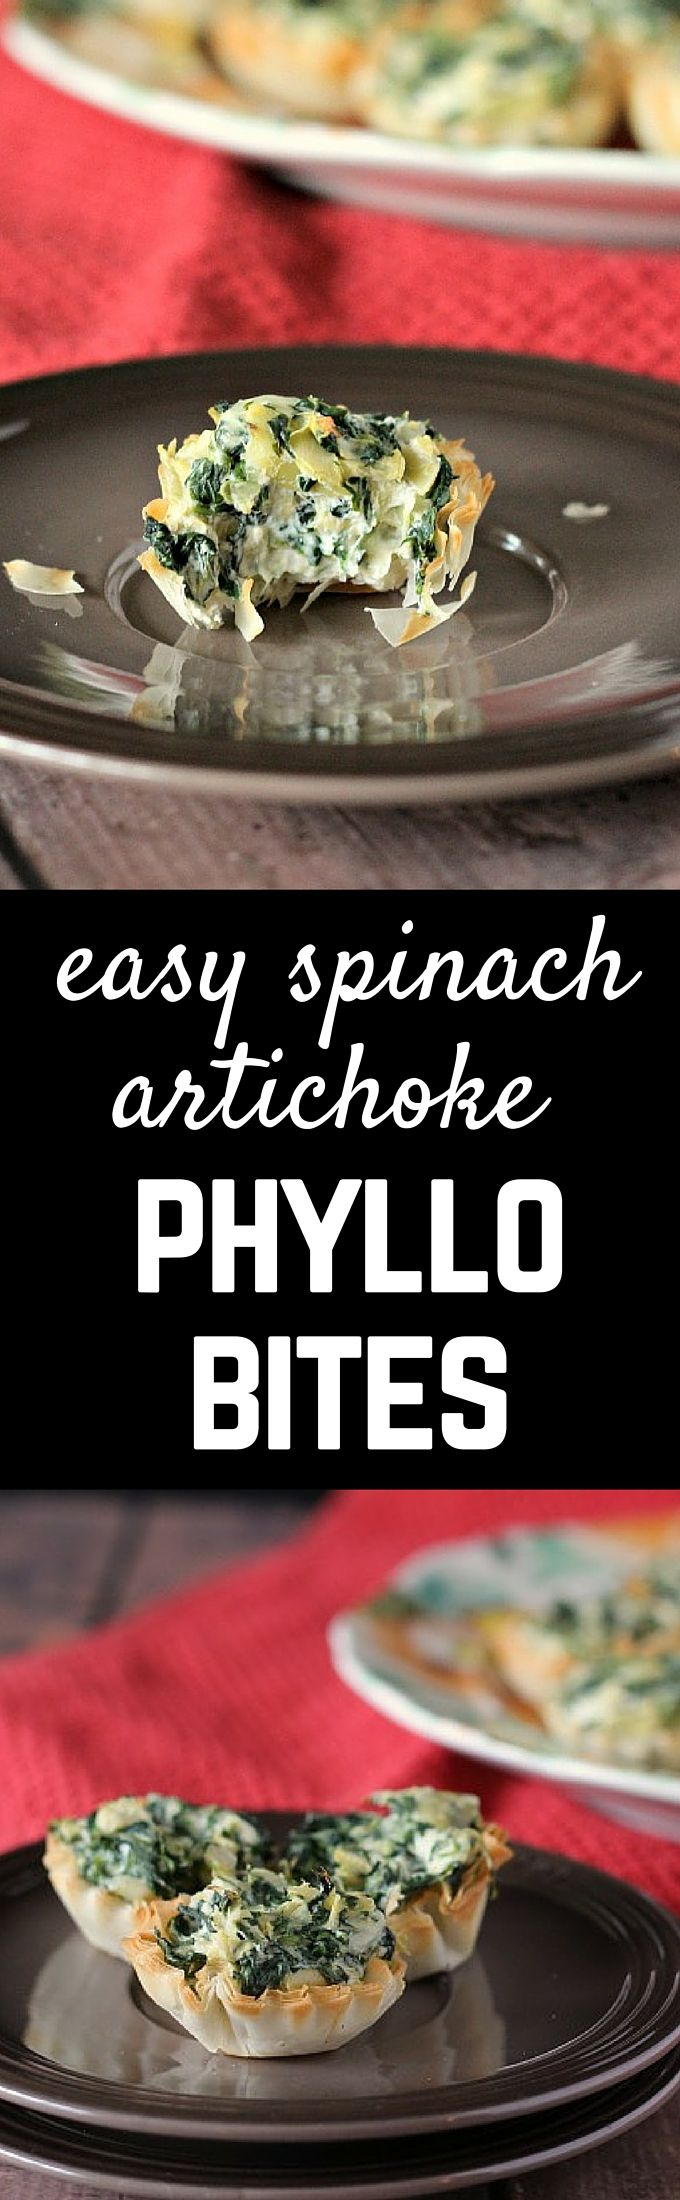 Spinach Artichoke Phyllo Bites will be a hit at your next party. Get the easy recipe on RachelCooks.com!